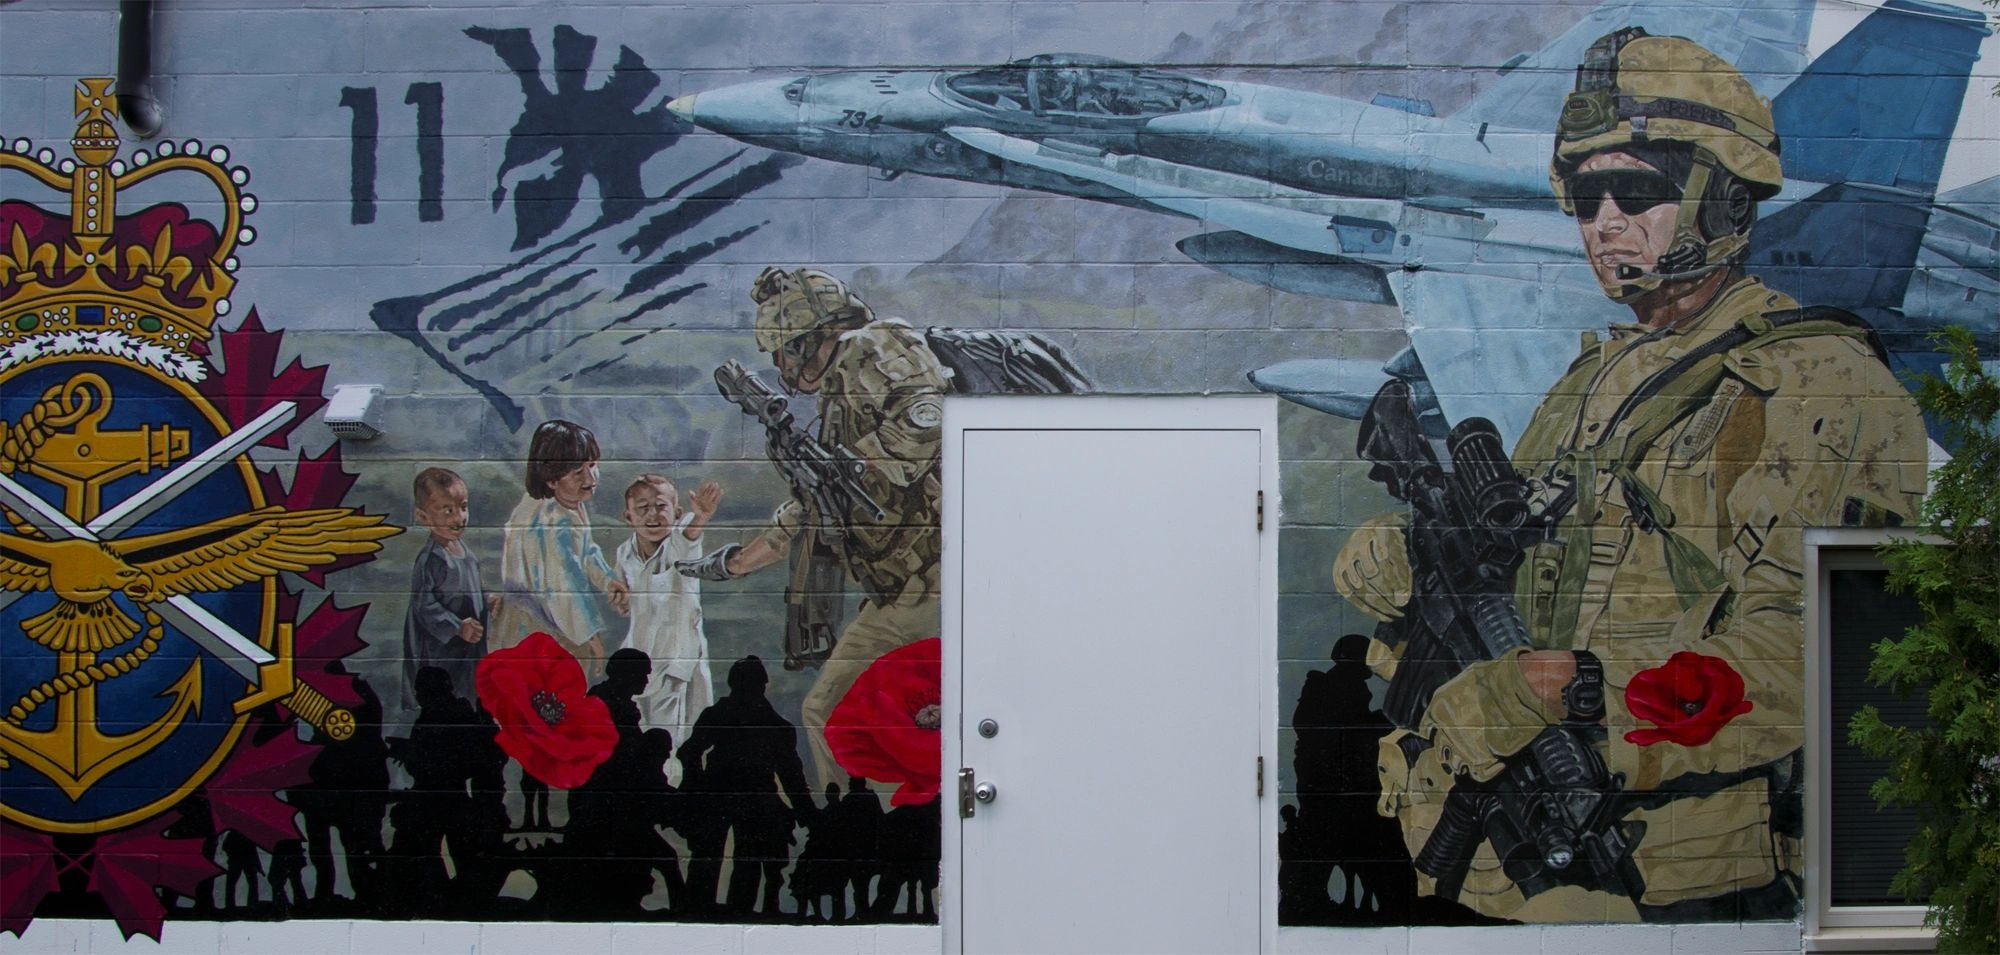 Canadian soldiers in Afghanistan. Military Mural. Ontario mural. Remembrance mural. Jet aircraft.